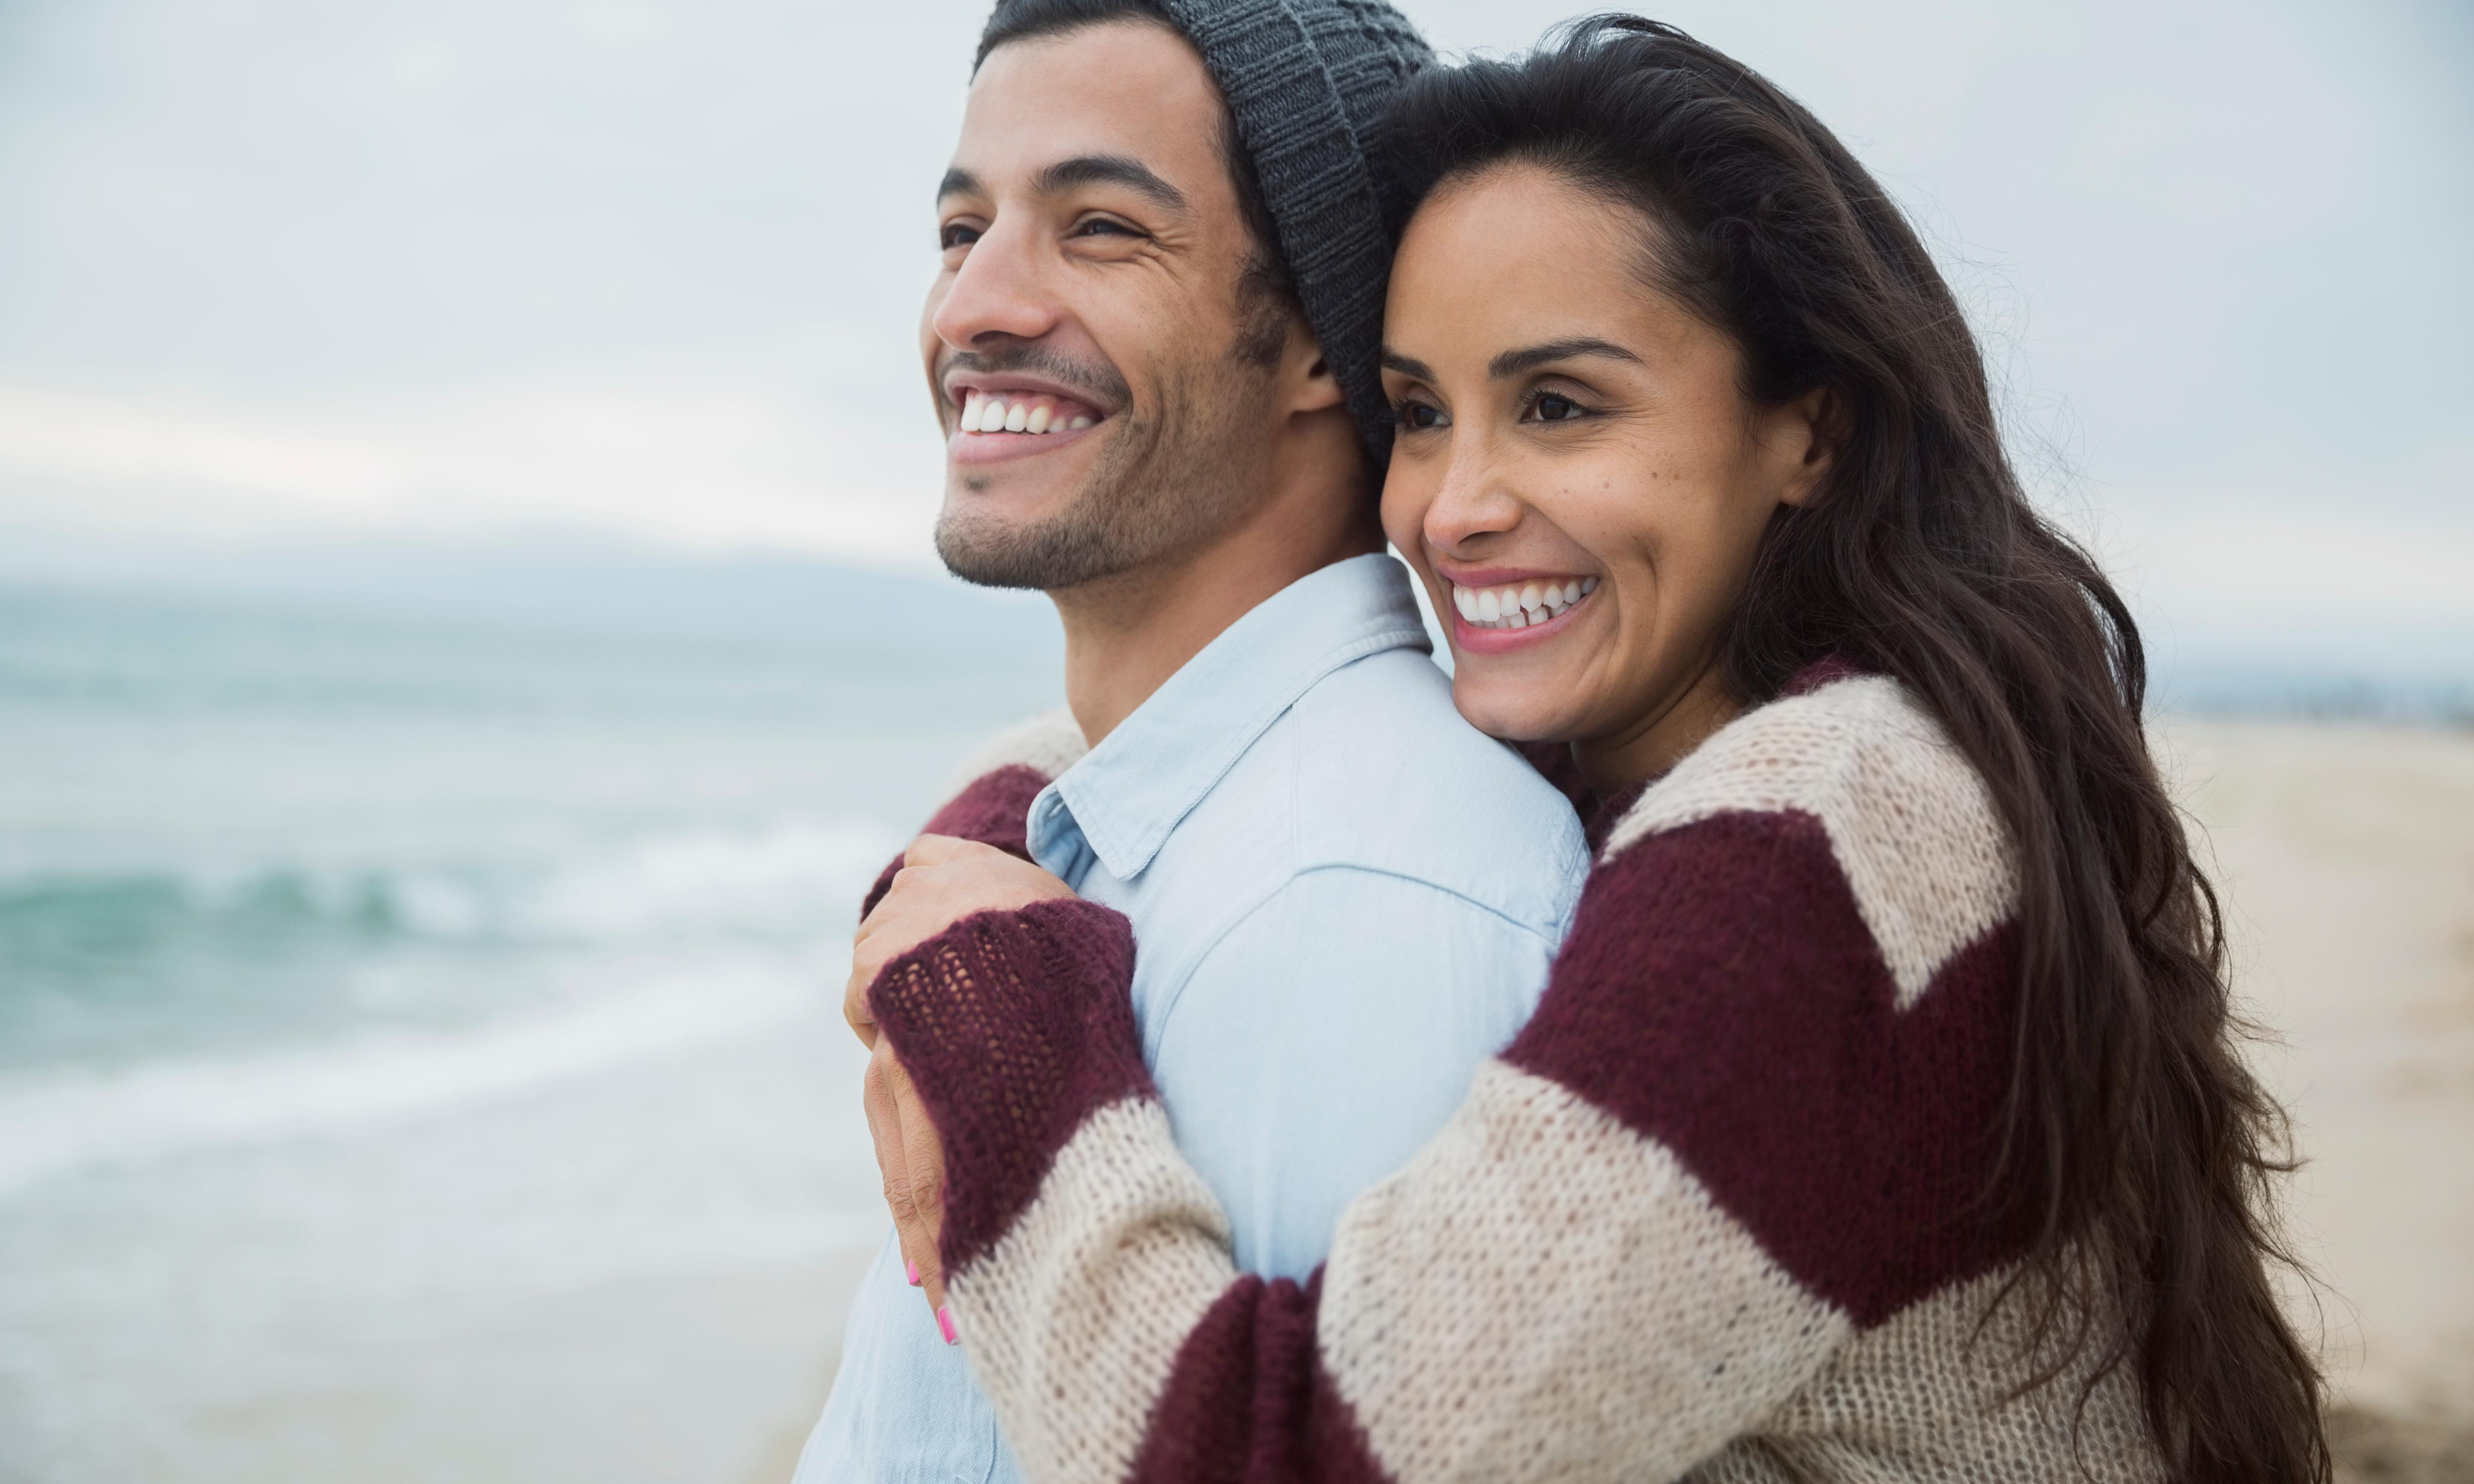 Take away the idea of true love and we would all have a better chance of happiness | Life and style